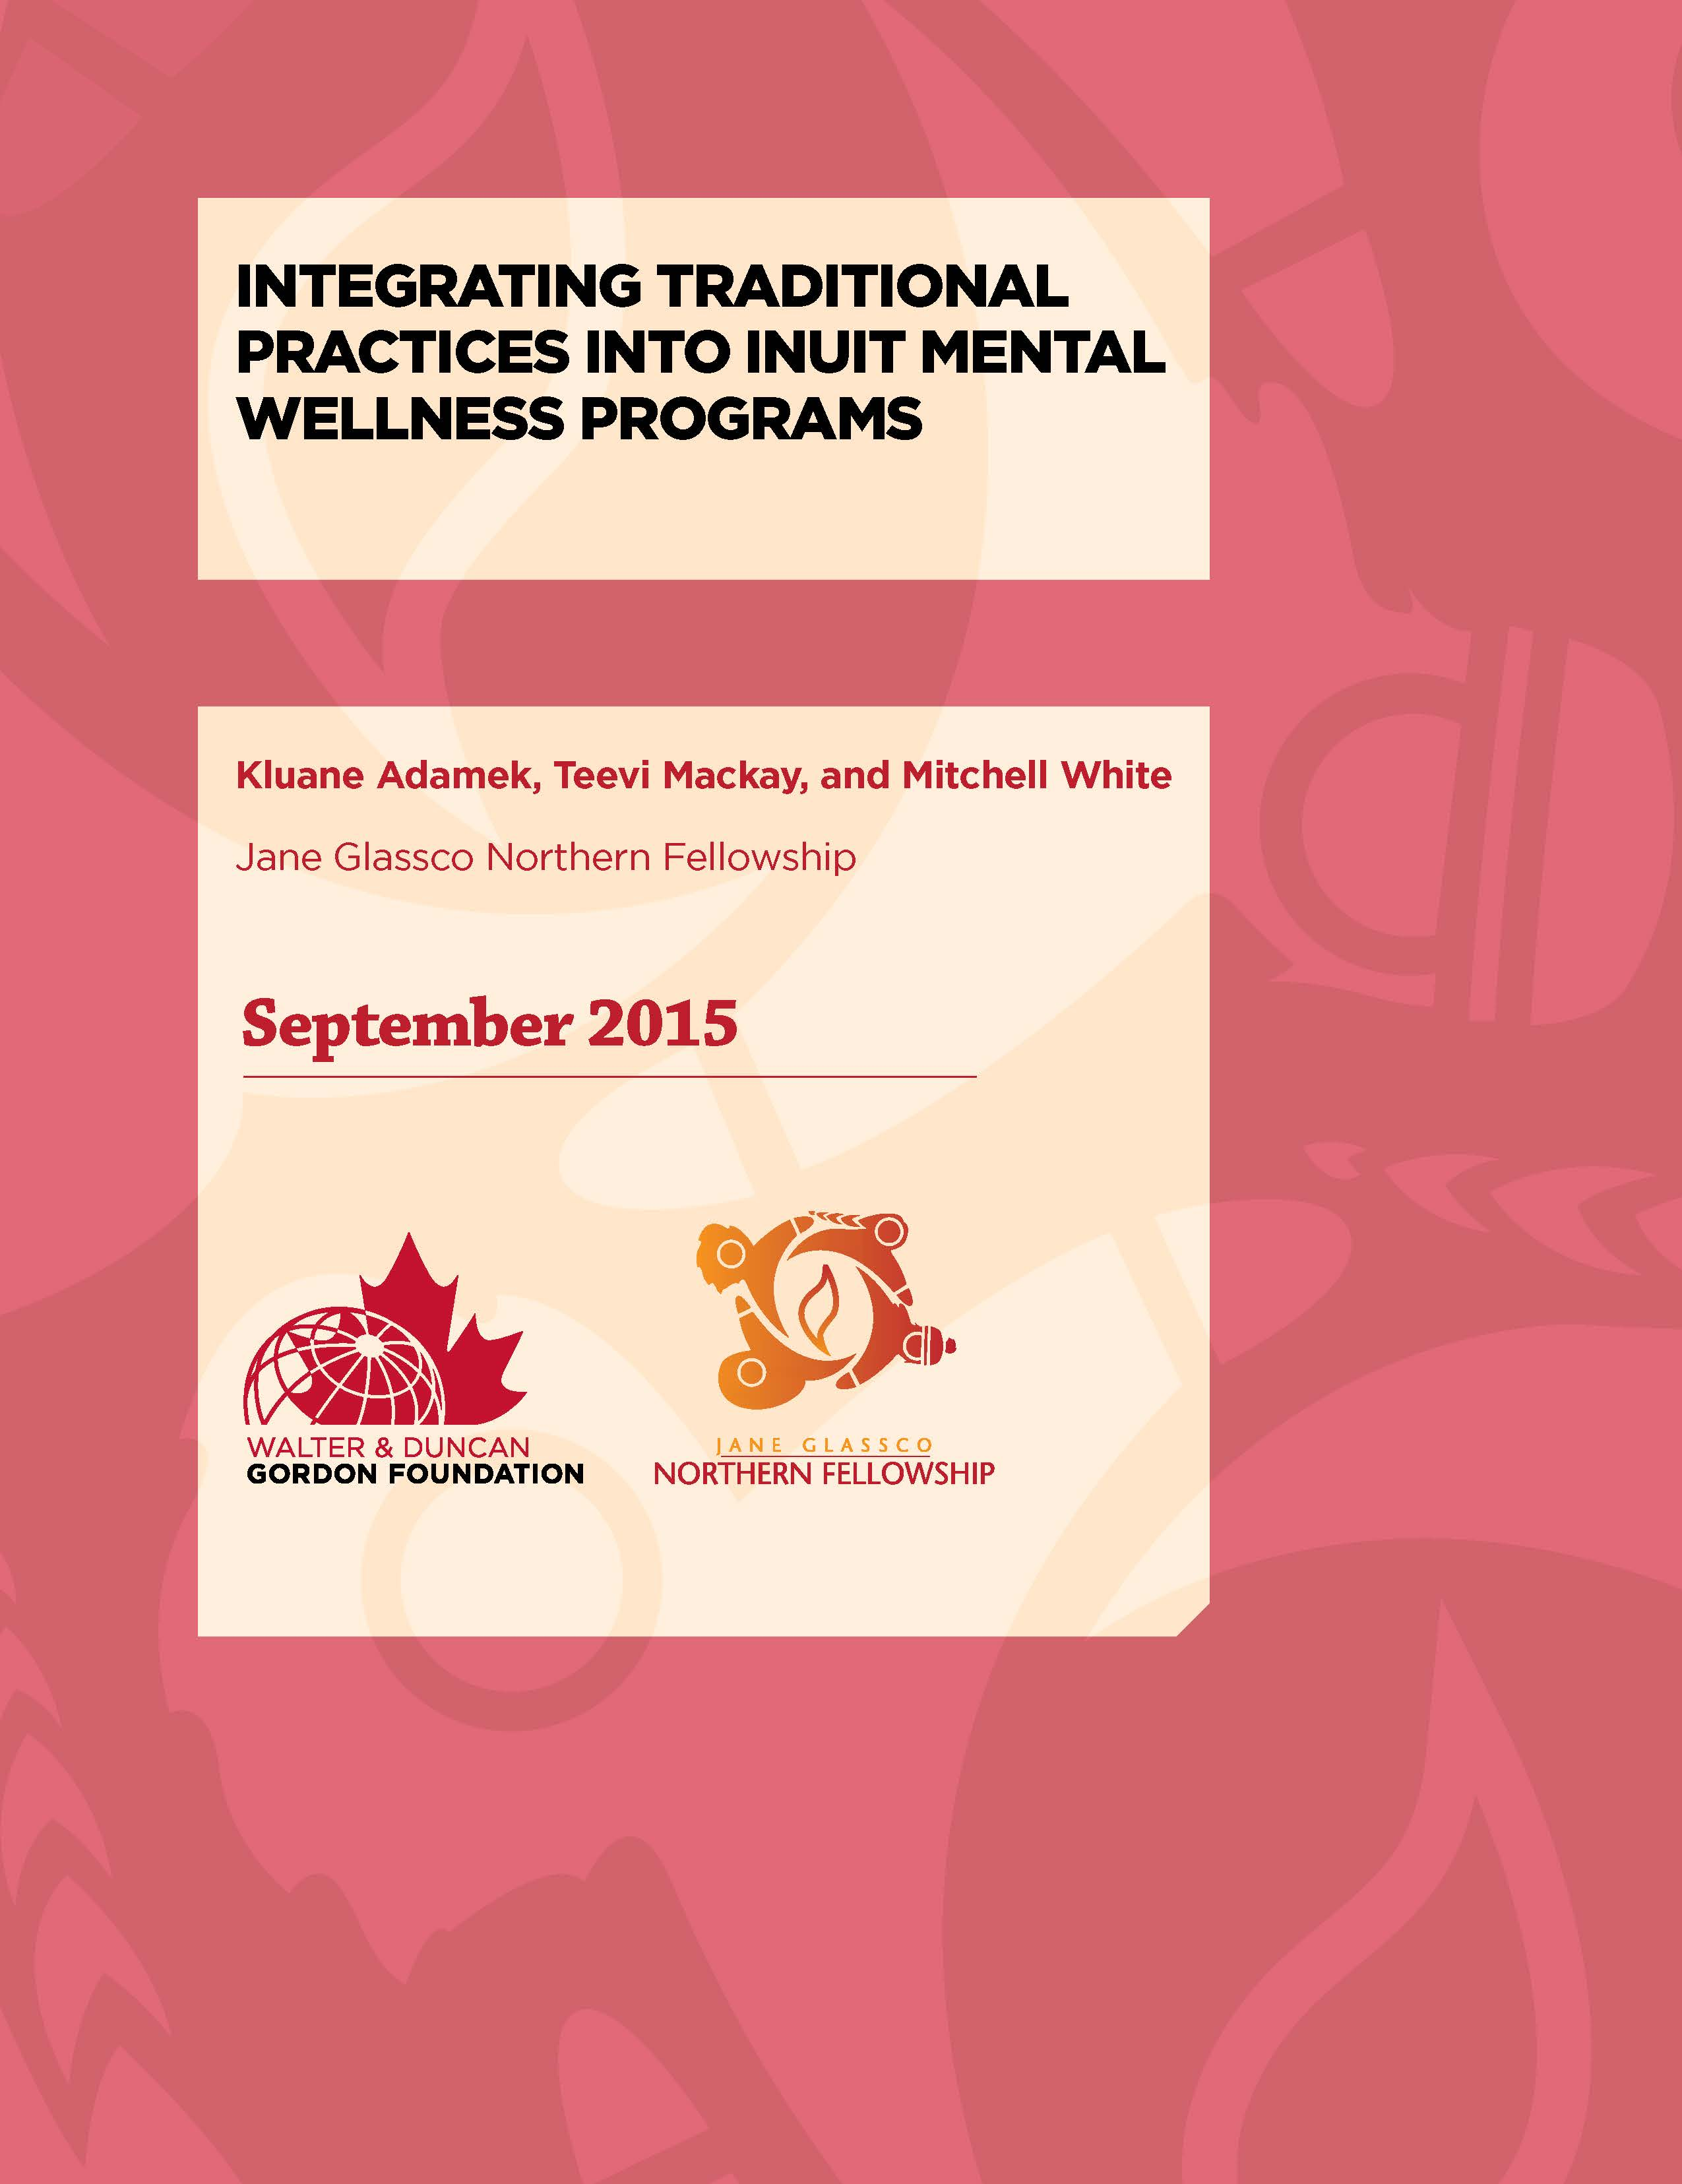 JGNF_2015_Group_IntegratingTraditionalPractices_COVERONLY